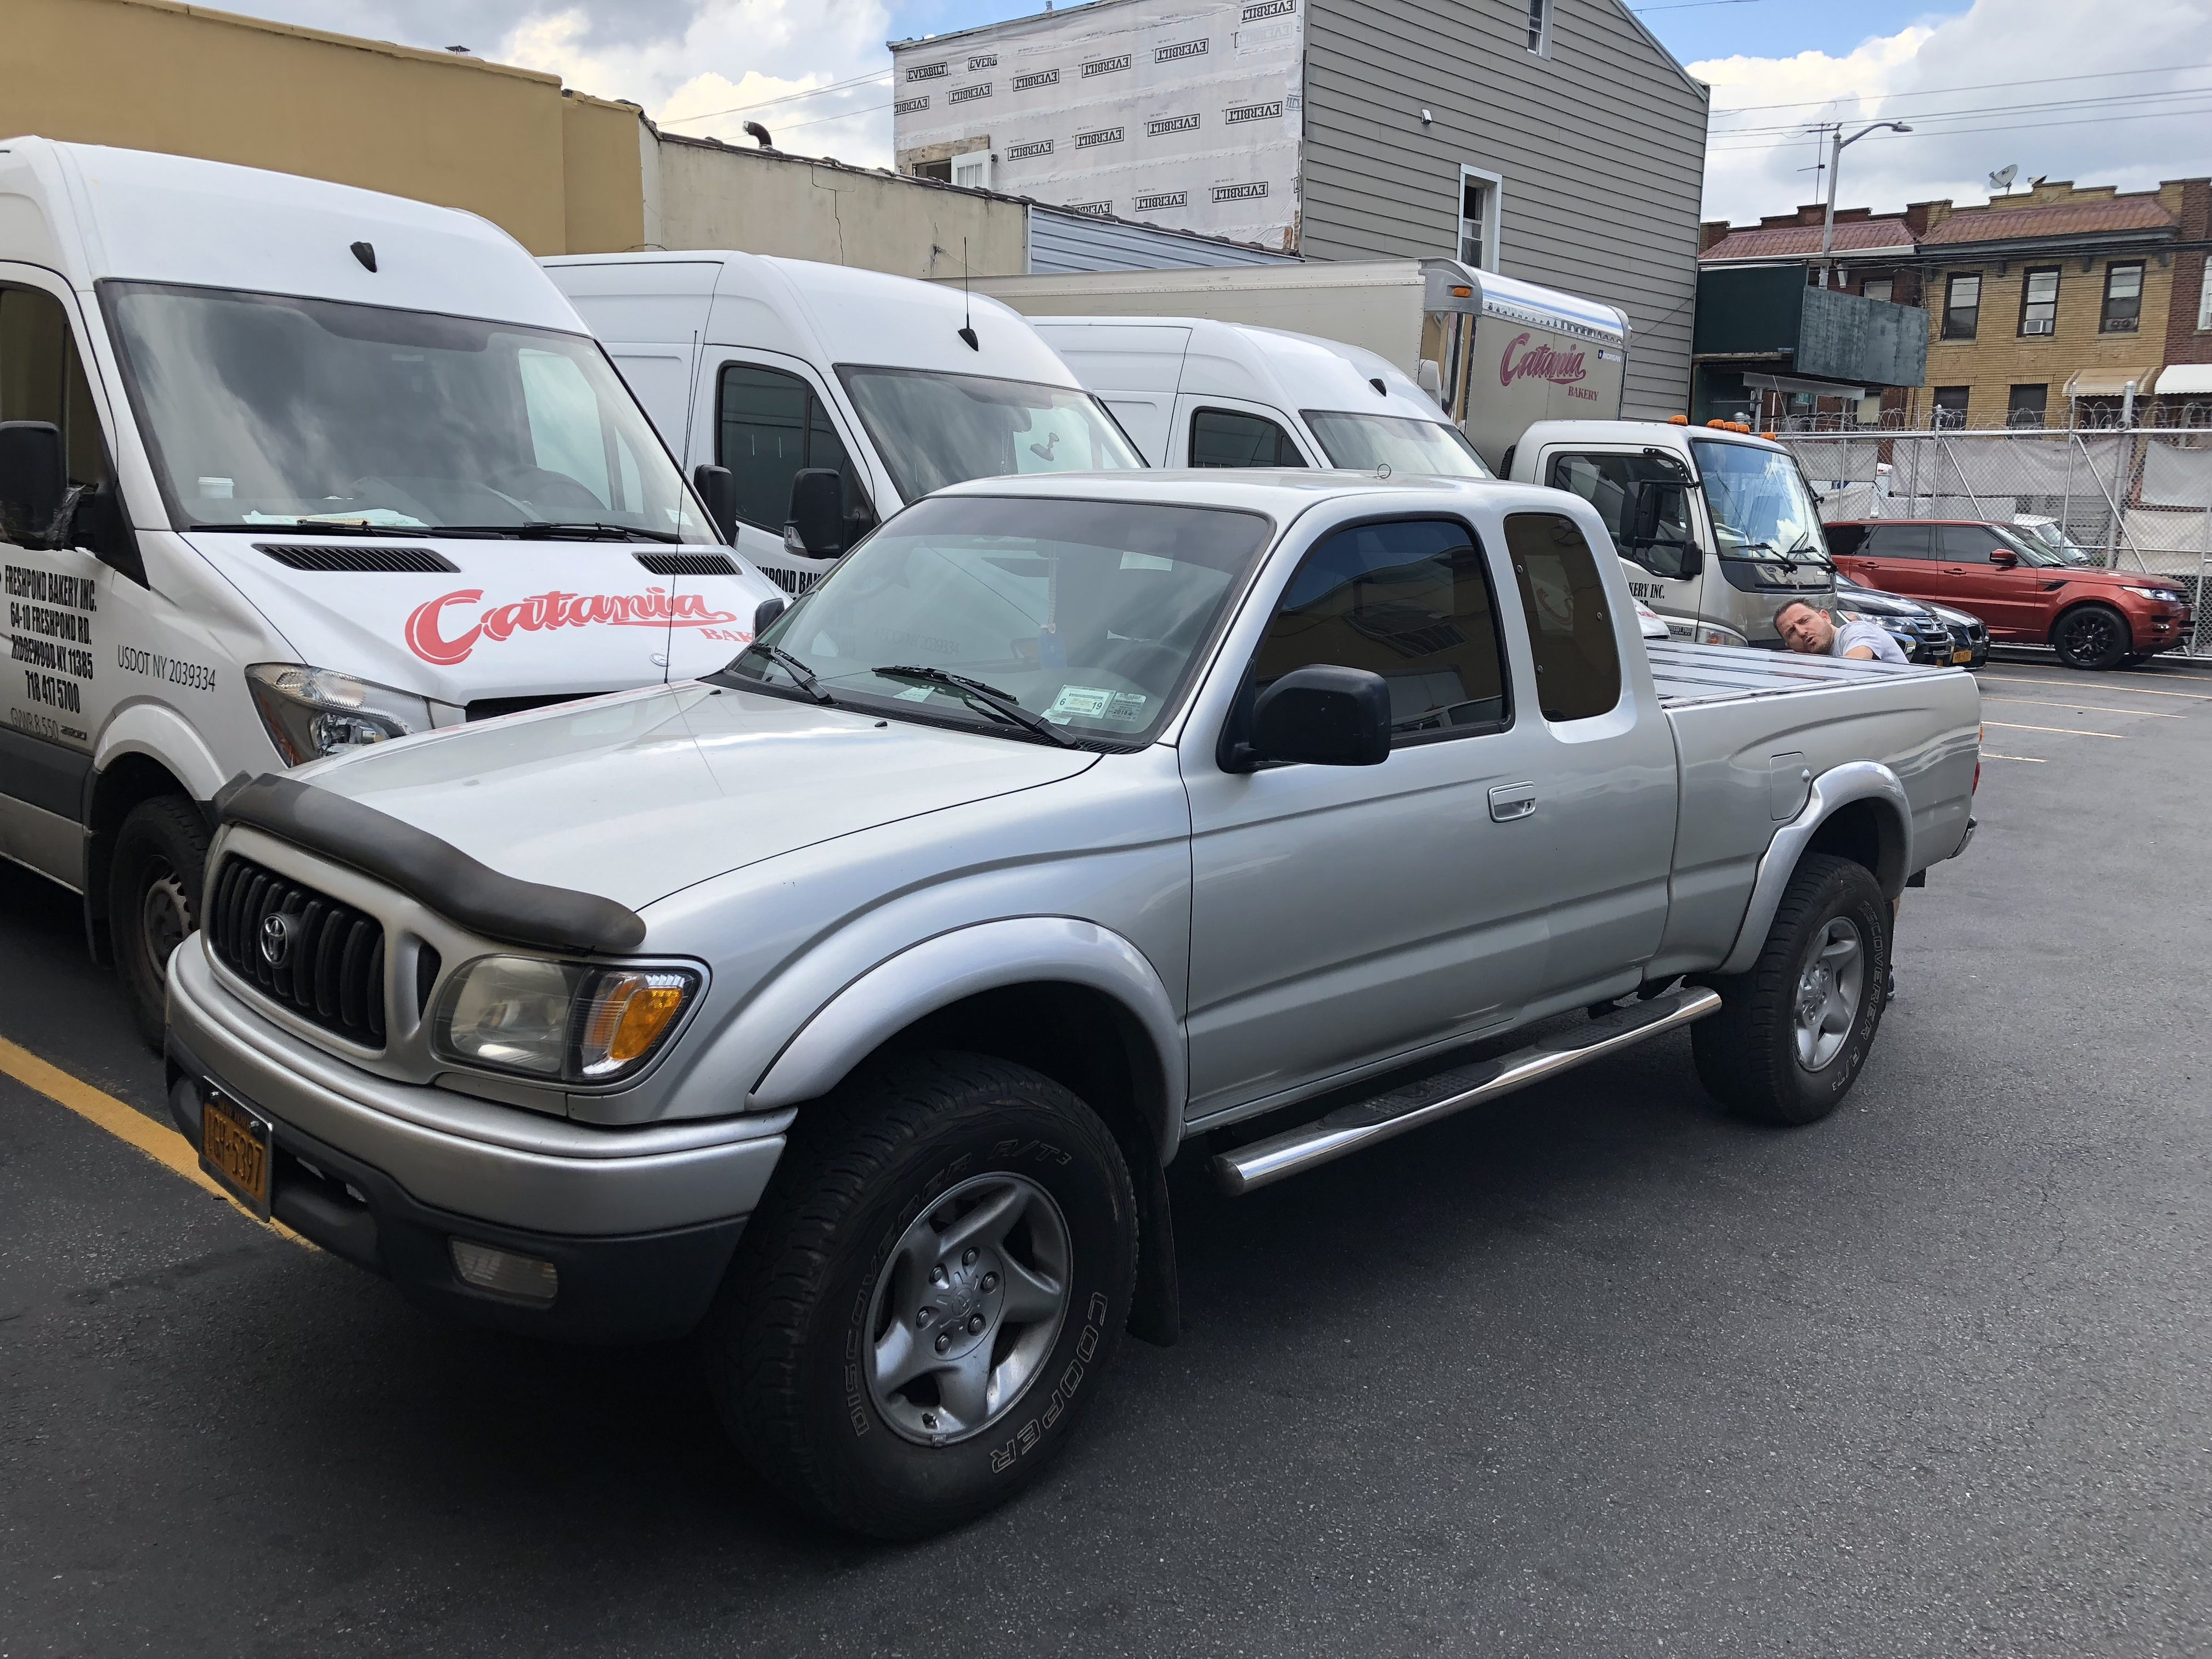 2004 Toyota Tacoma Bed Cover Pna Auto Sport Truck Lifted